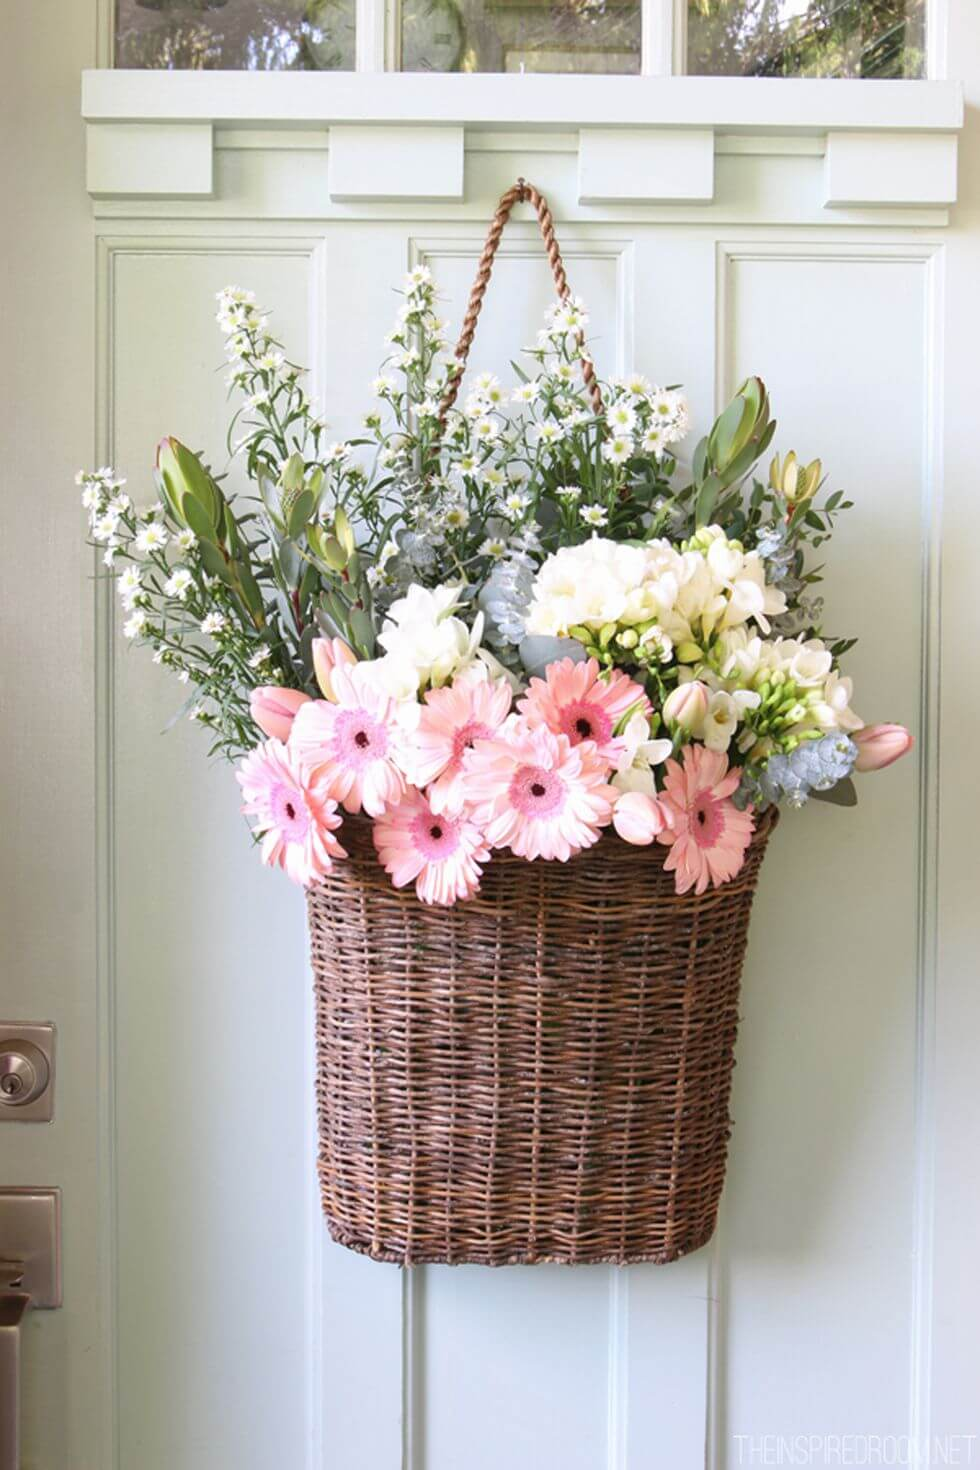 33 Best Summer Wreath Ideas and Designs for 2020 on Decorative Wall Sconces For Flowers Hanging Baskets Delivery id=32544